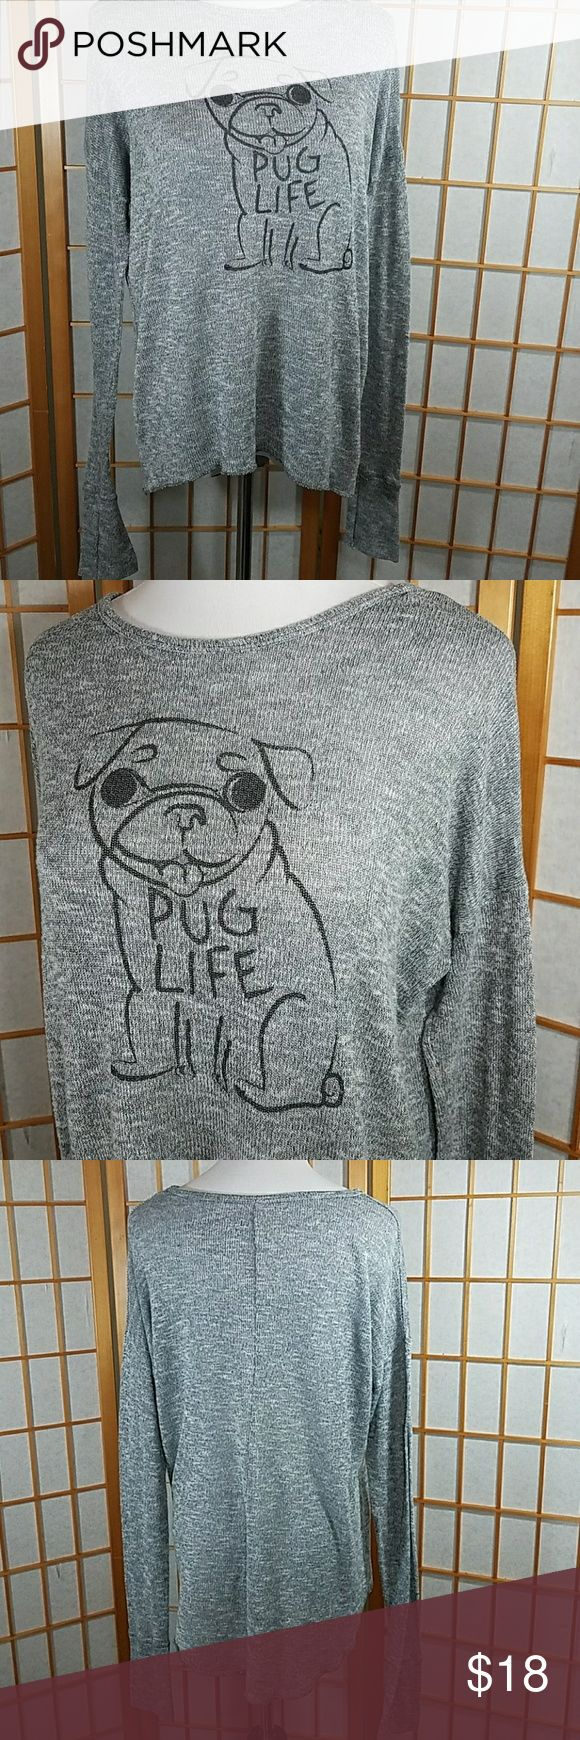 "Bethany Mota lightweight gray sweater with pug Bethany Mota lightweight gray sweater with pug, pug life saying. Bery light weight and comfortable extra long sleeves, and high low hem. Size Medium measures 20"" across from armpit to armpit when laid flat and 18"" across the waist when laid flat with some strech.  24"" long from back neckline to hem in the front and  26"" long in back. Excellent used condition. Bethany Mota Sweaters Crew & Scoop Necks"